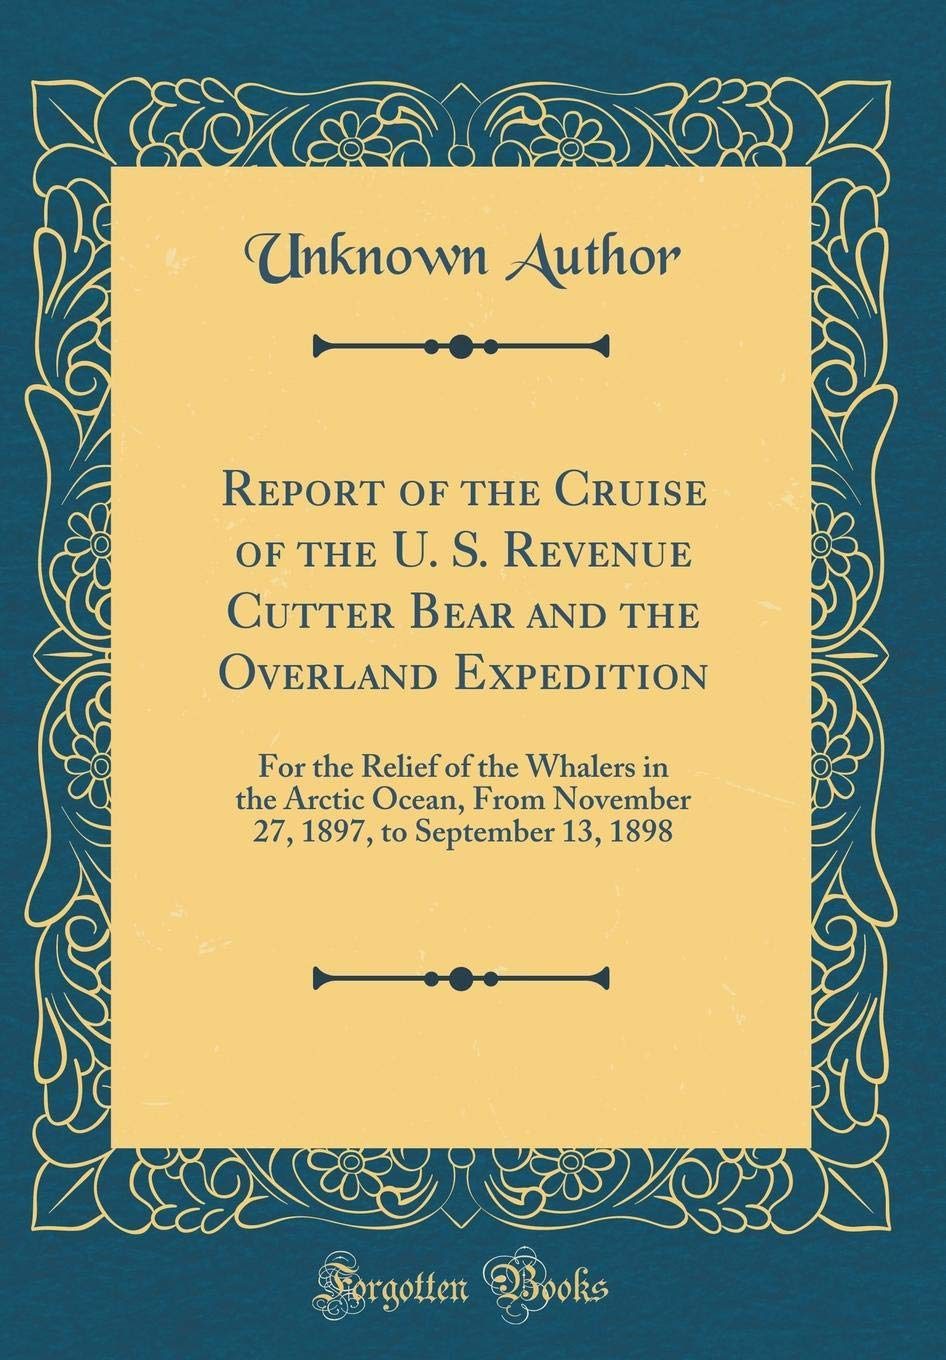 Report of the Cruise of the U. S. Revenue Cutter Bear and the Overland Expedition: For the Relief of the Whalers in the Arctic Ocean, from November 27, 1897, to September 13, 1898 (Classic Reprint) ebook